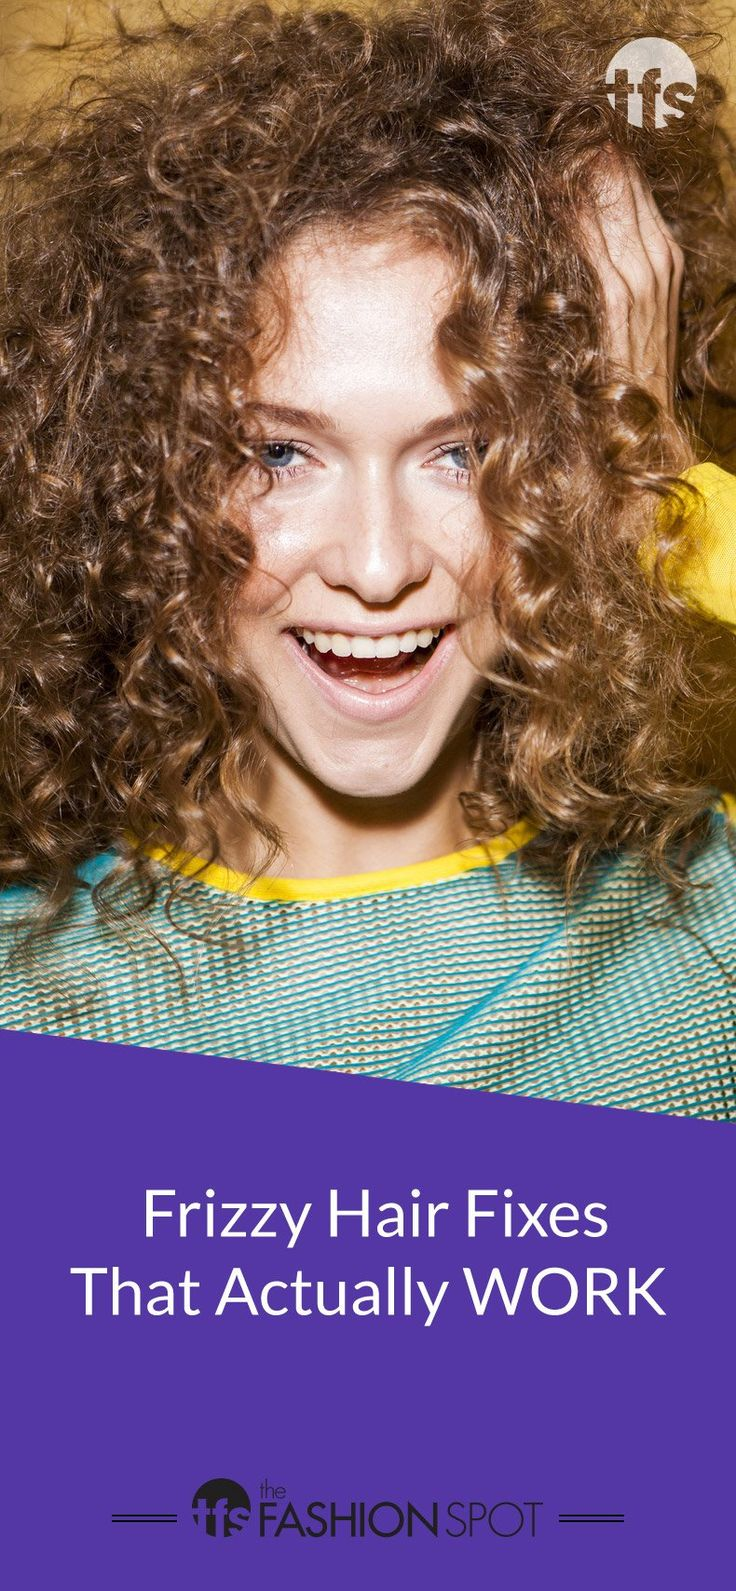 Frizzy Hair Fixes: Anti-Humidity Hair Products That WORK